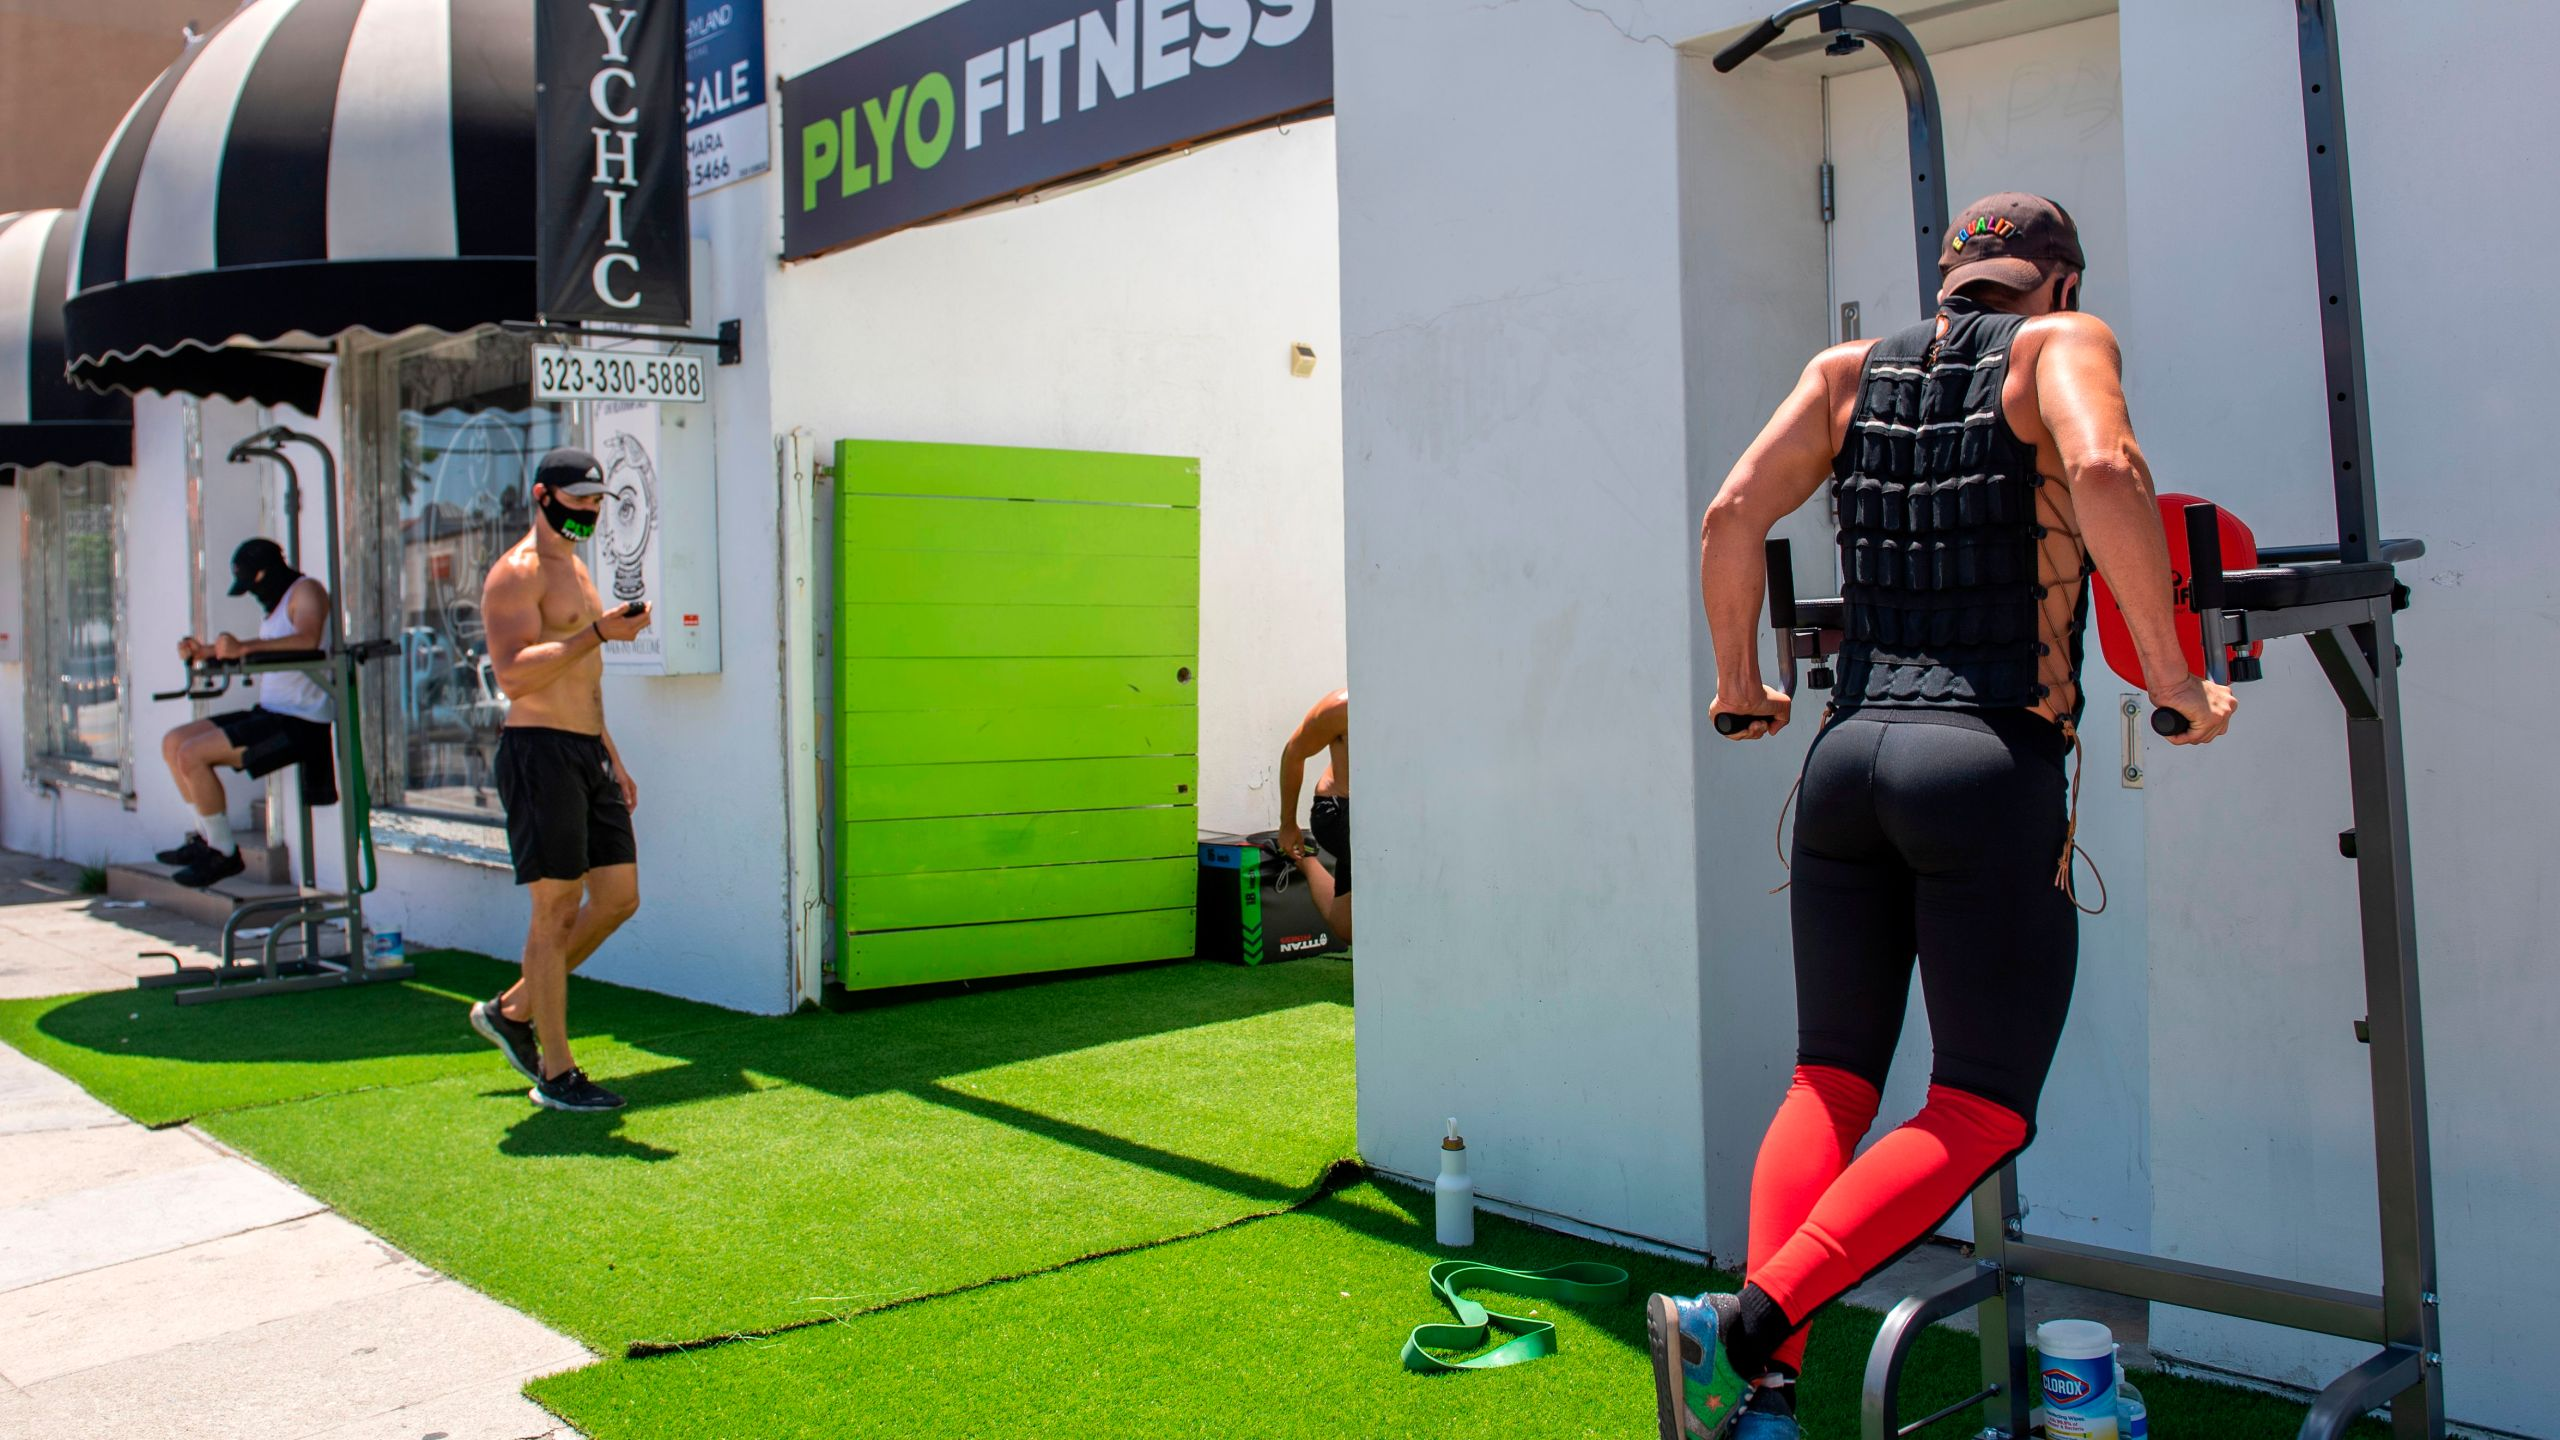 People take an outdoor class at Pylo Fitness, with workout equipment set up on the sidewalk on La Brea Blvd, on Aug. 7 2020, in Los Angele. (VALERIE MACON/AFP via Getty Images)